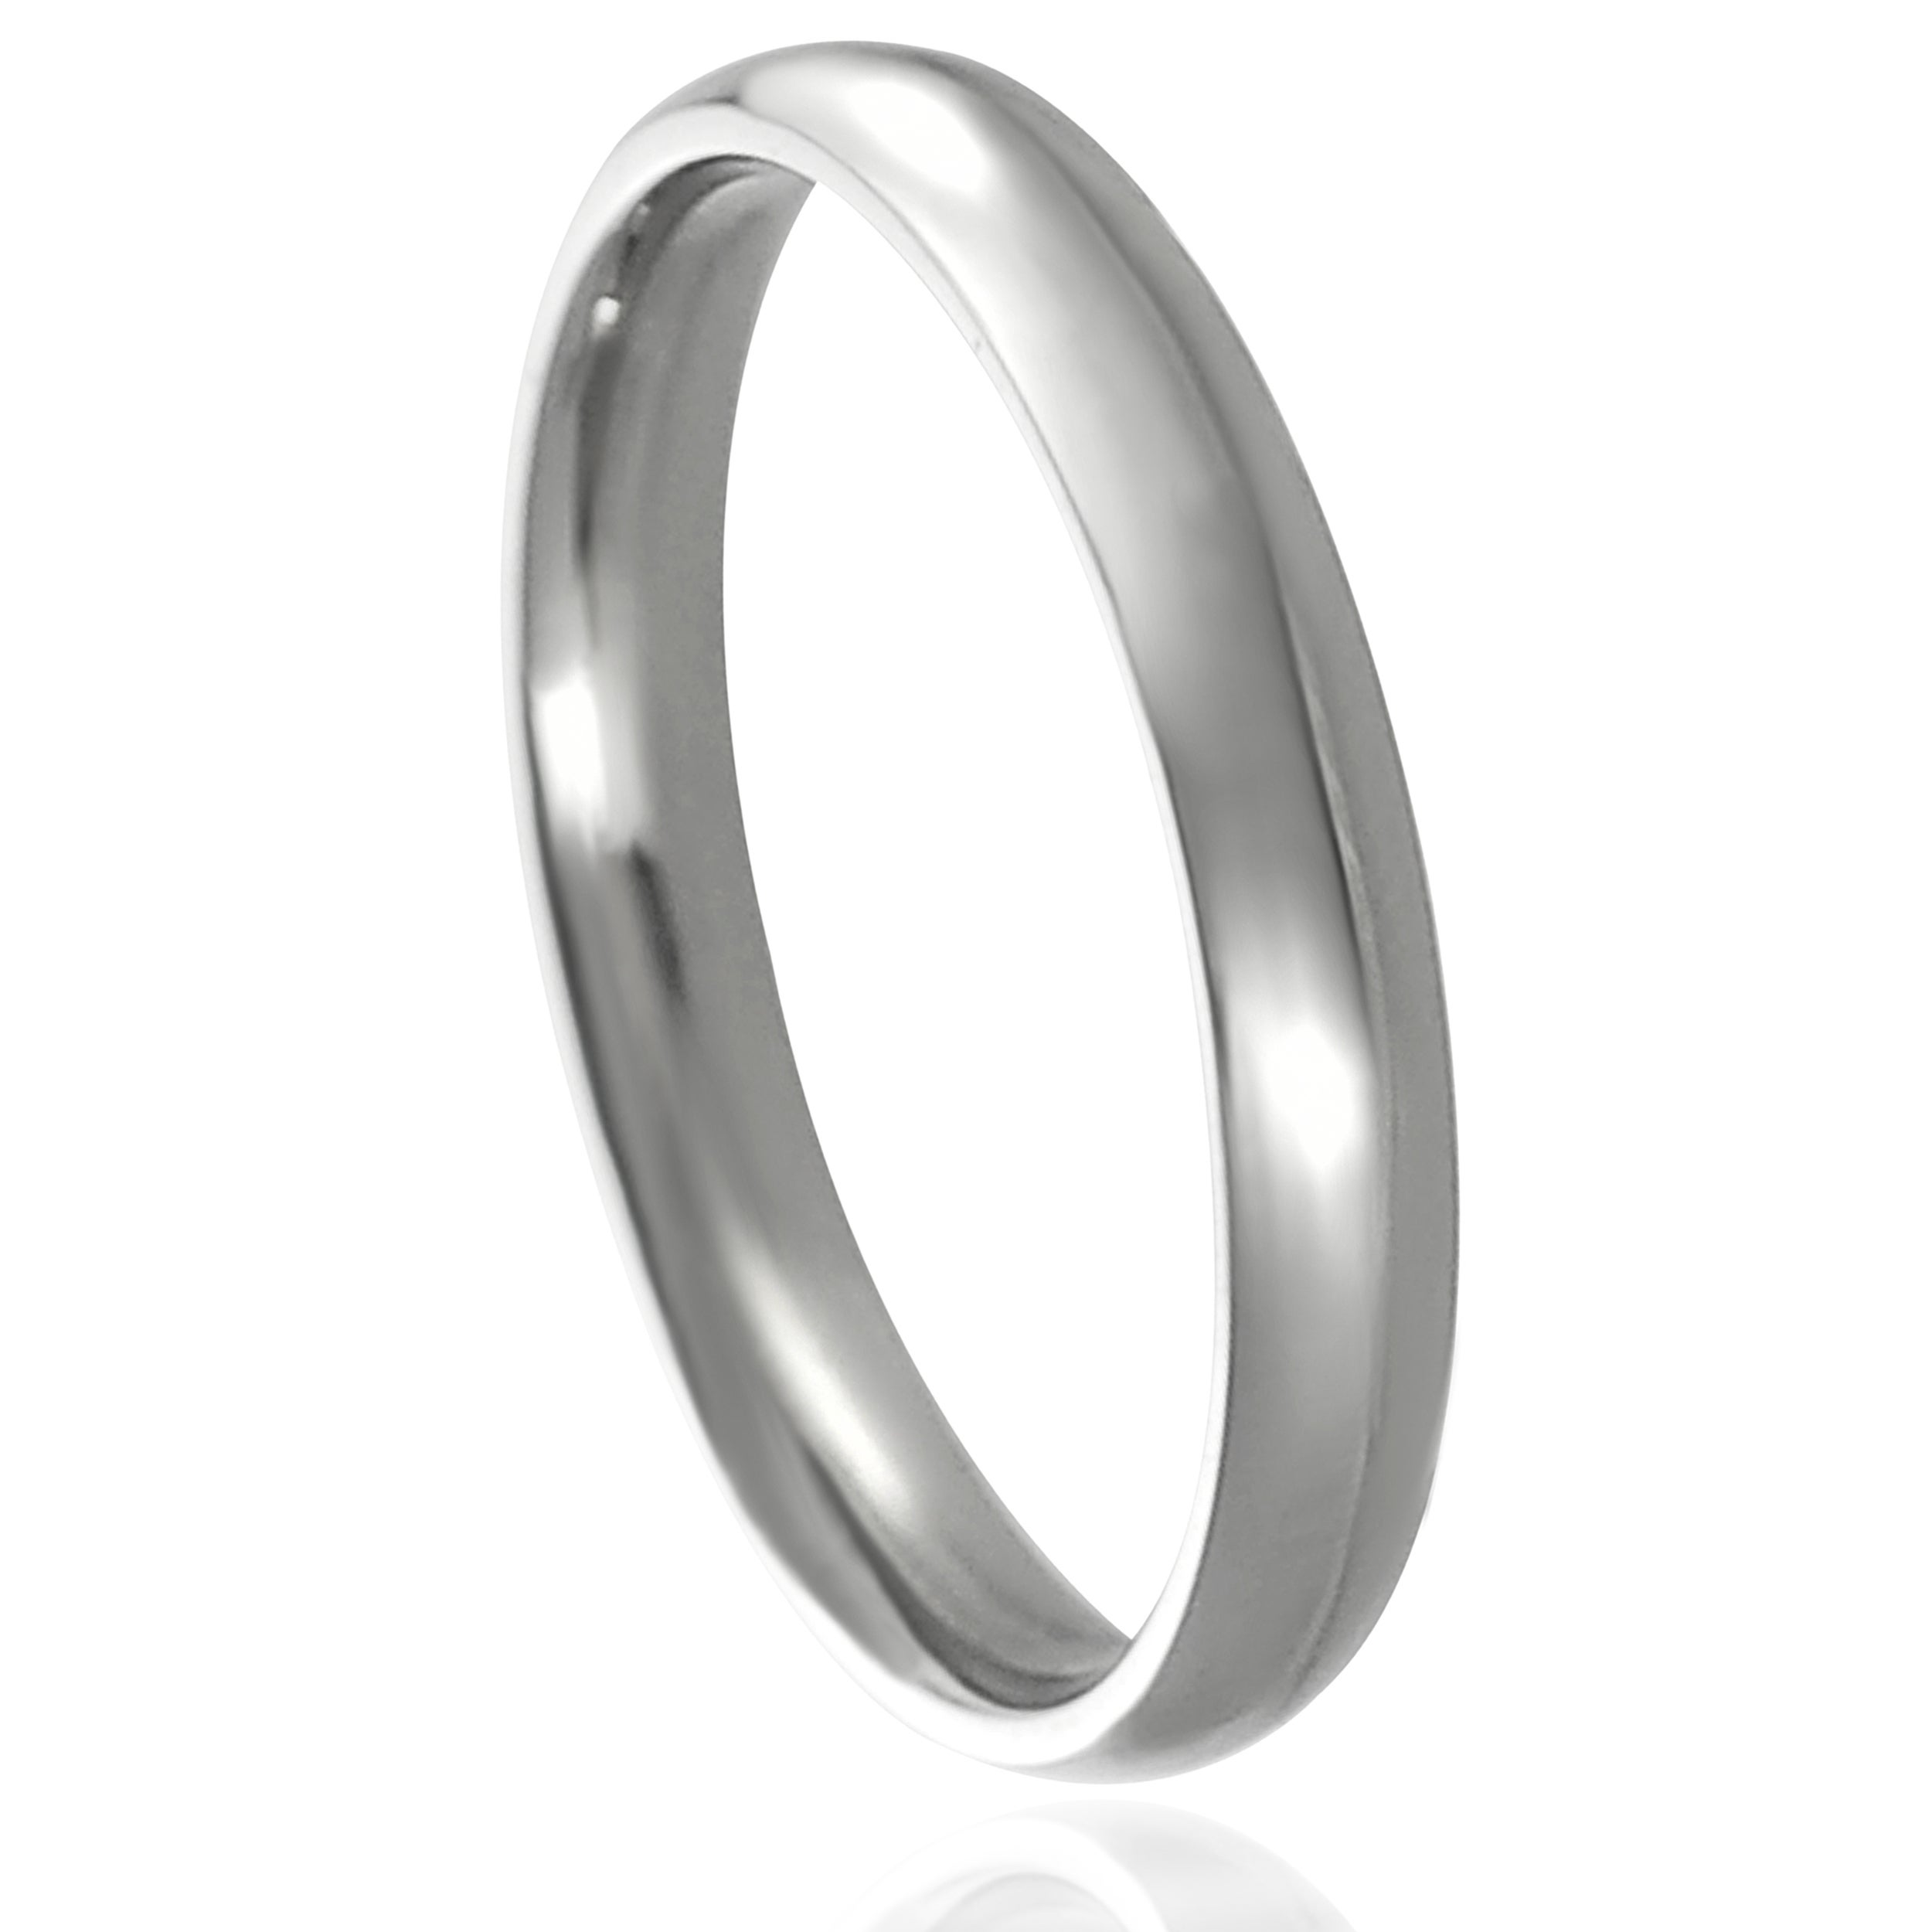 Journee Collection Stainless Steel Wedding Band 4 mm Overstock Shopping